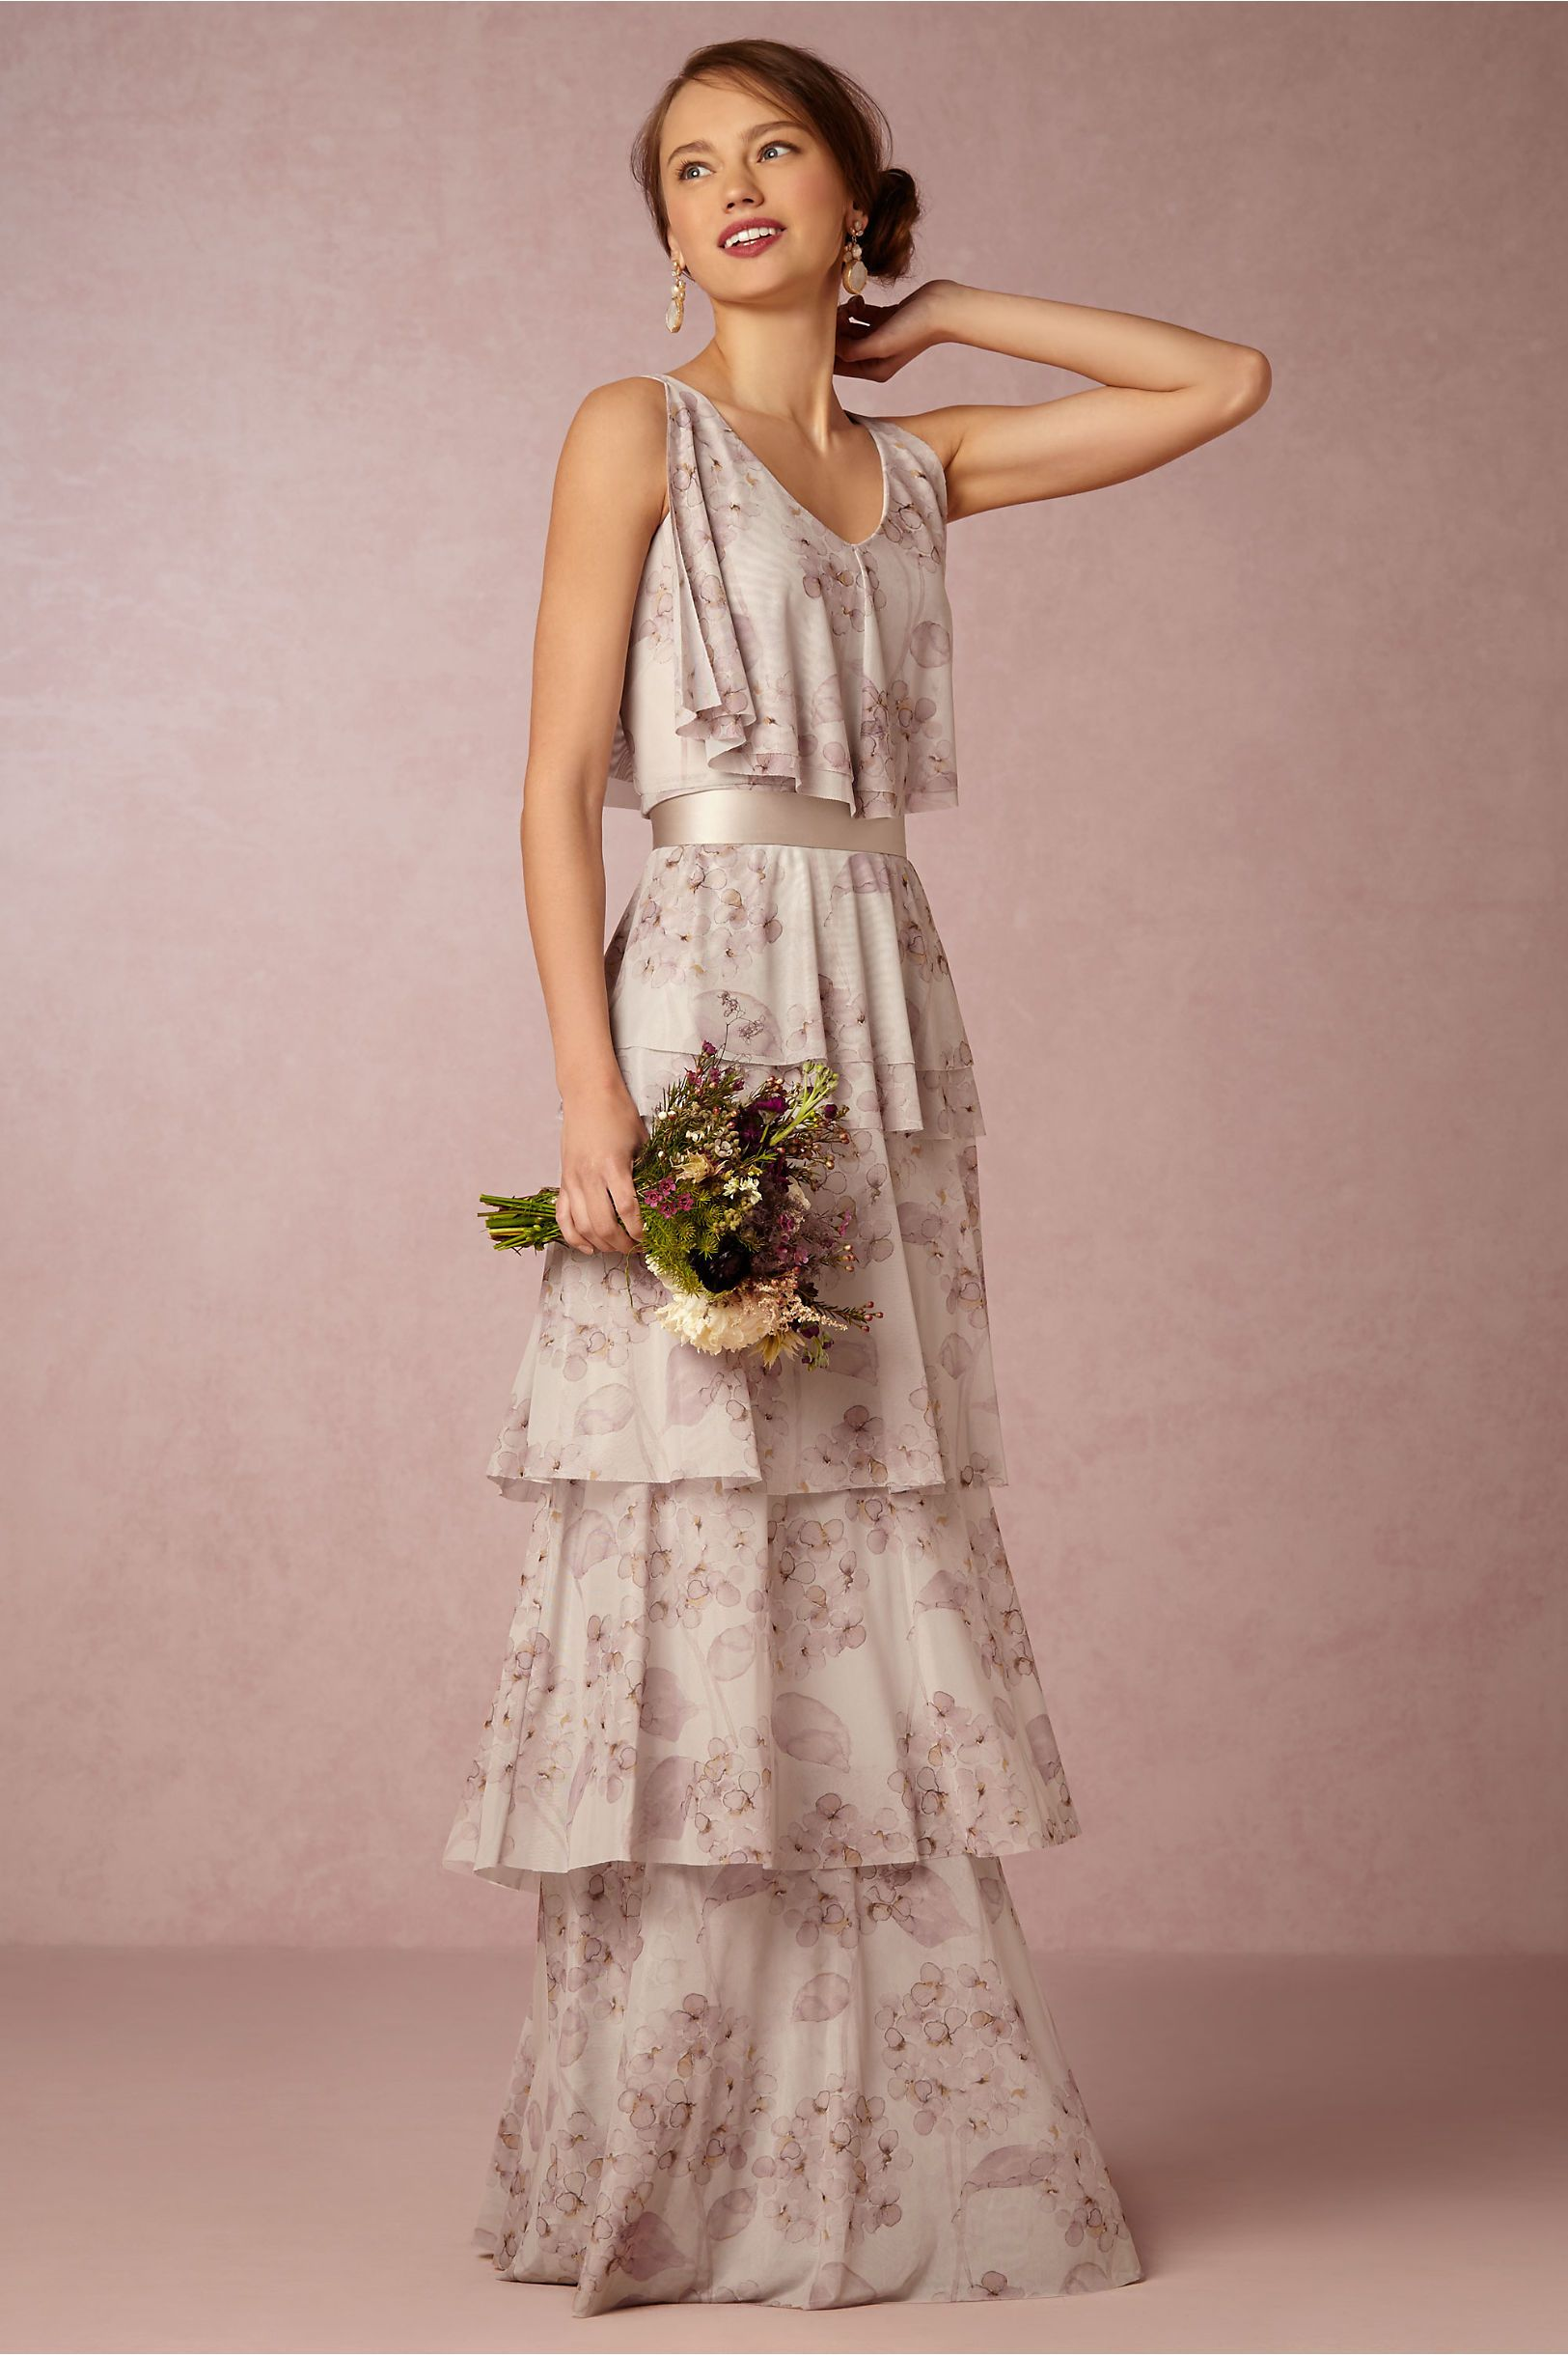 Delila Dress in Dresses View All Dresses at BHLDN | Happily Ever ...